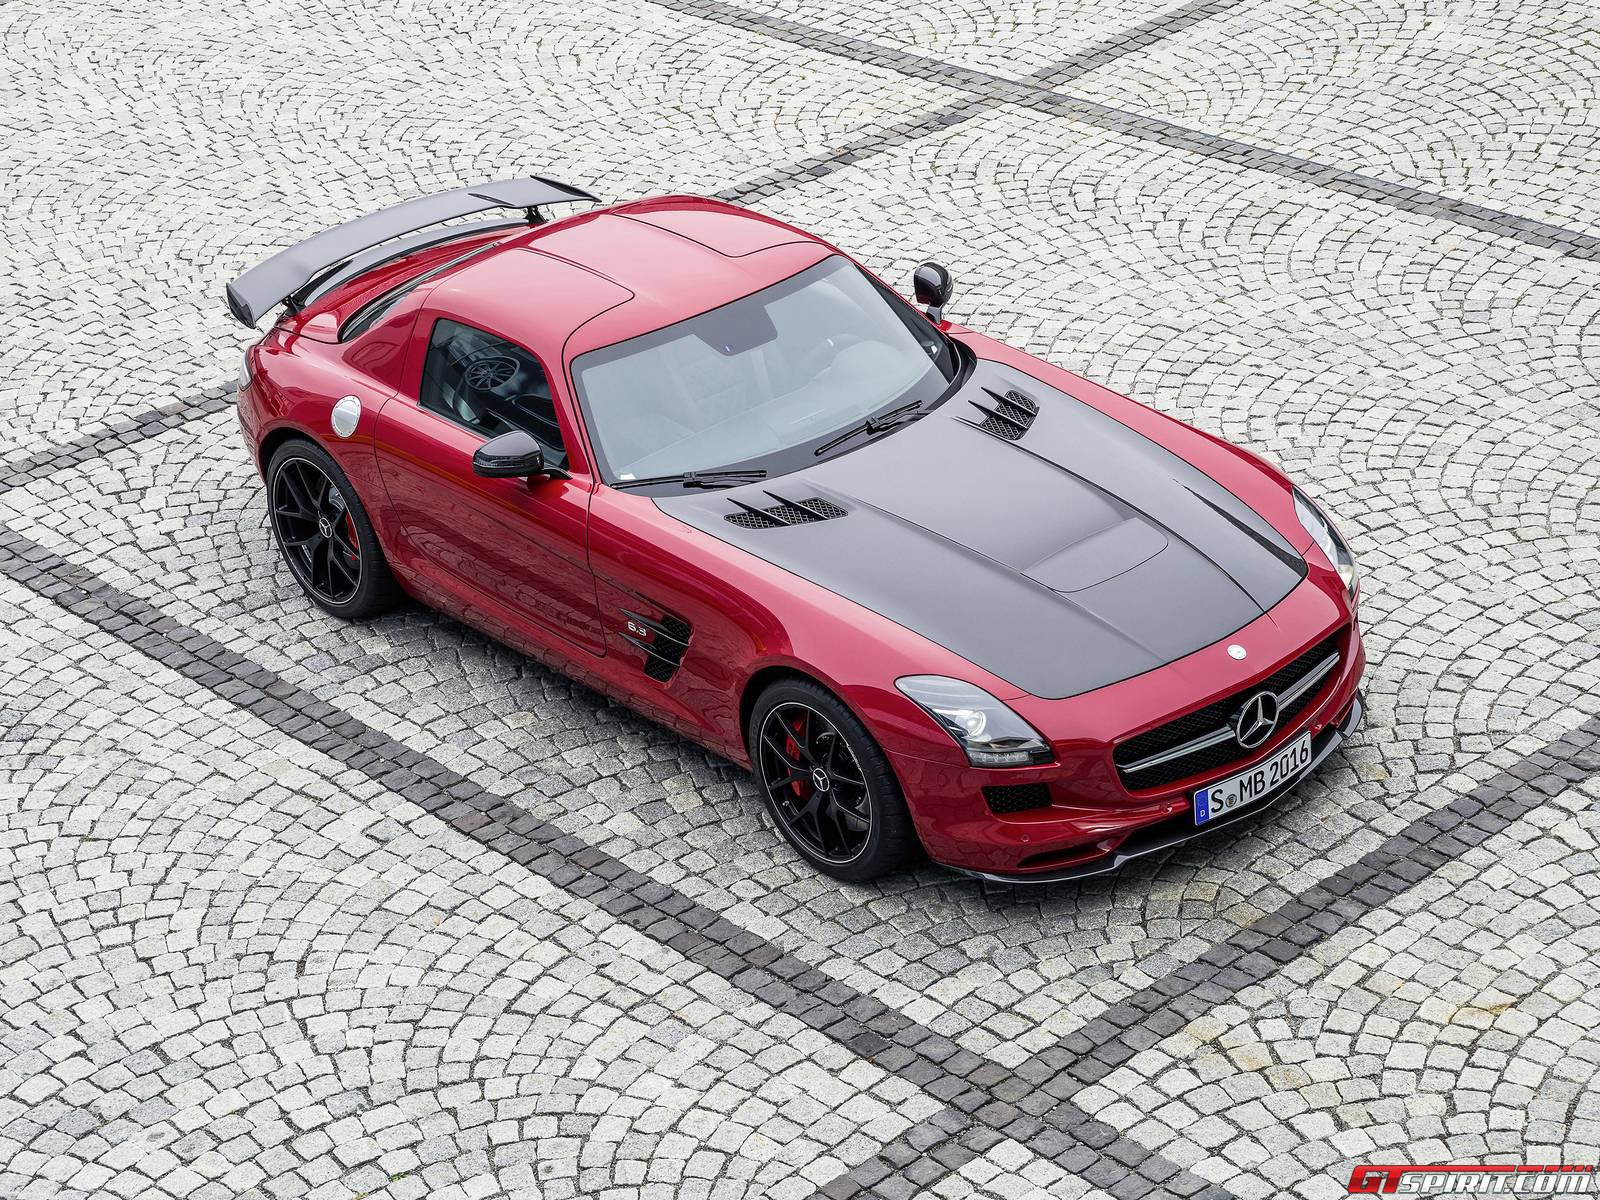 2015 Mercedes-Benz Sls Amg Gt Final Edition #10